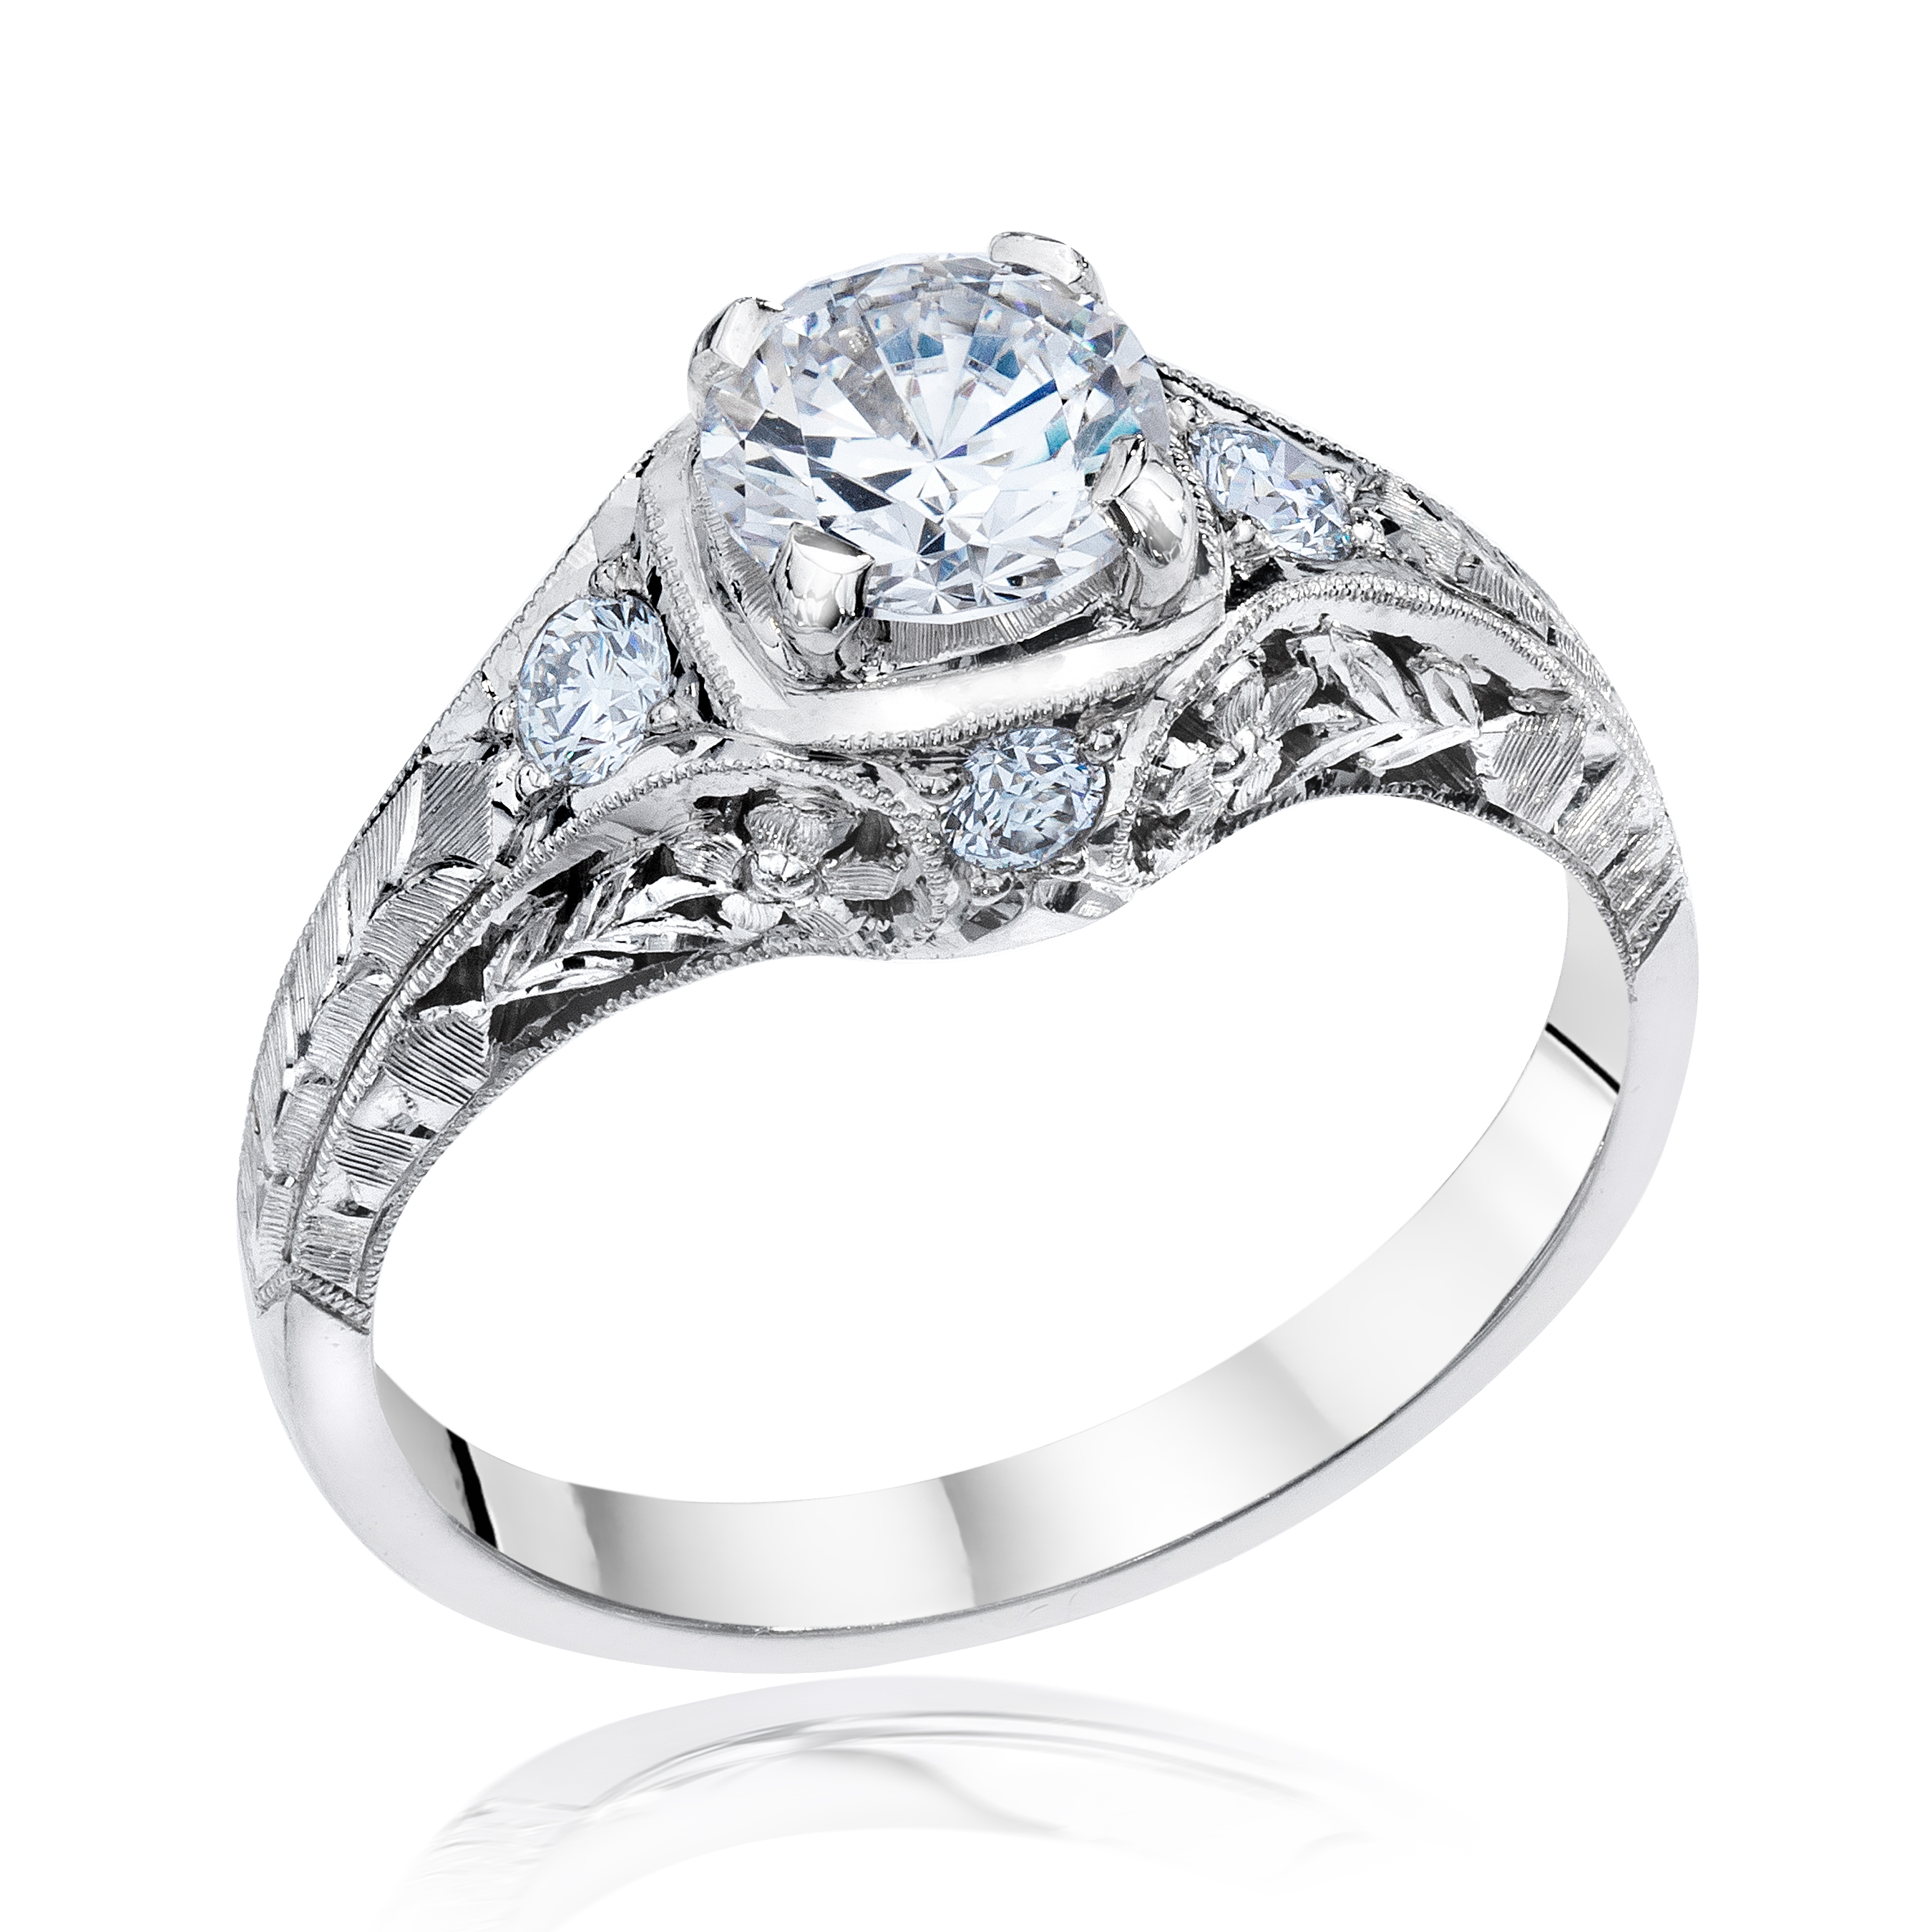 White Gold Filigree Engagement Ring